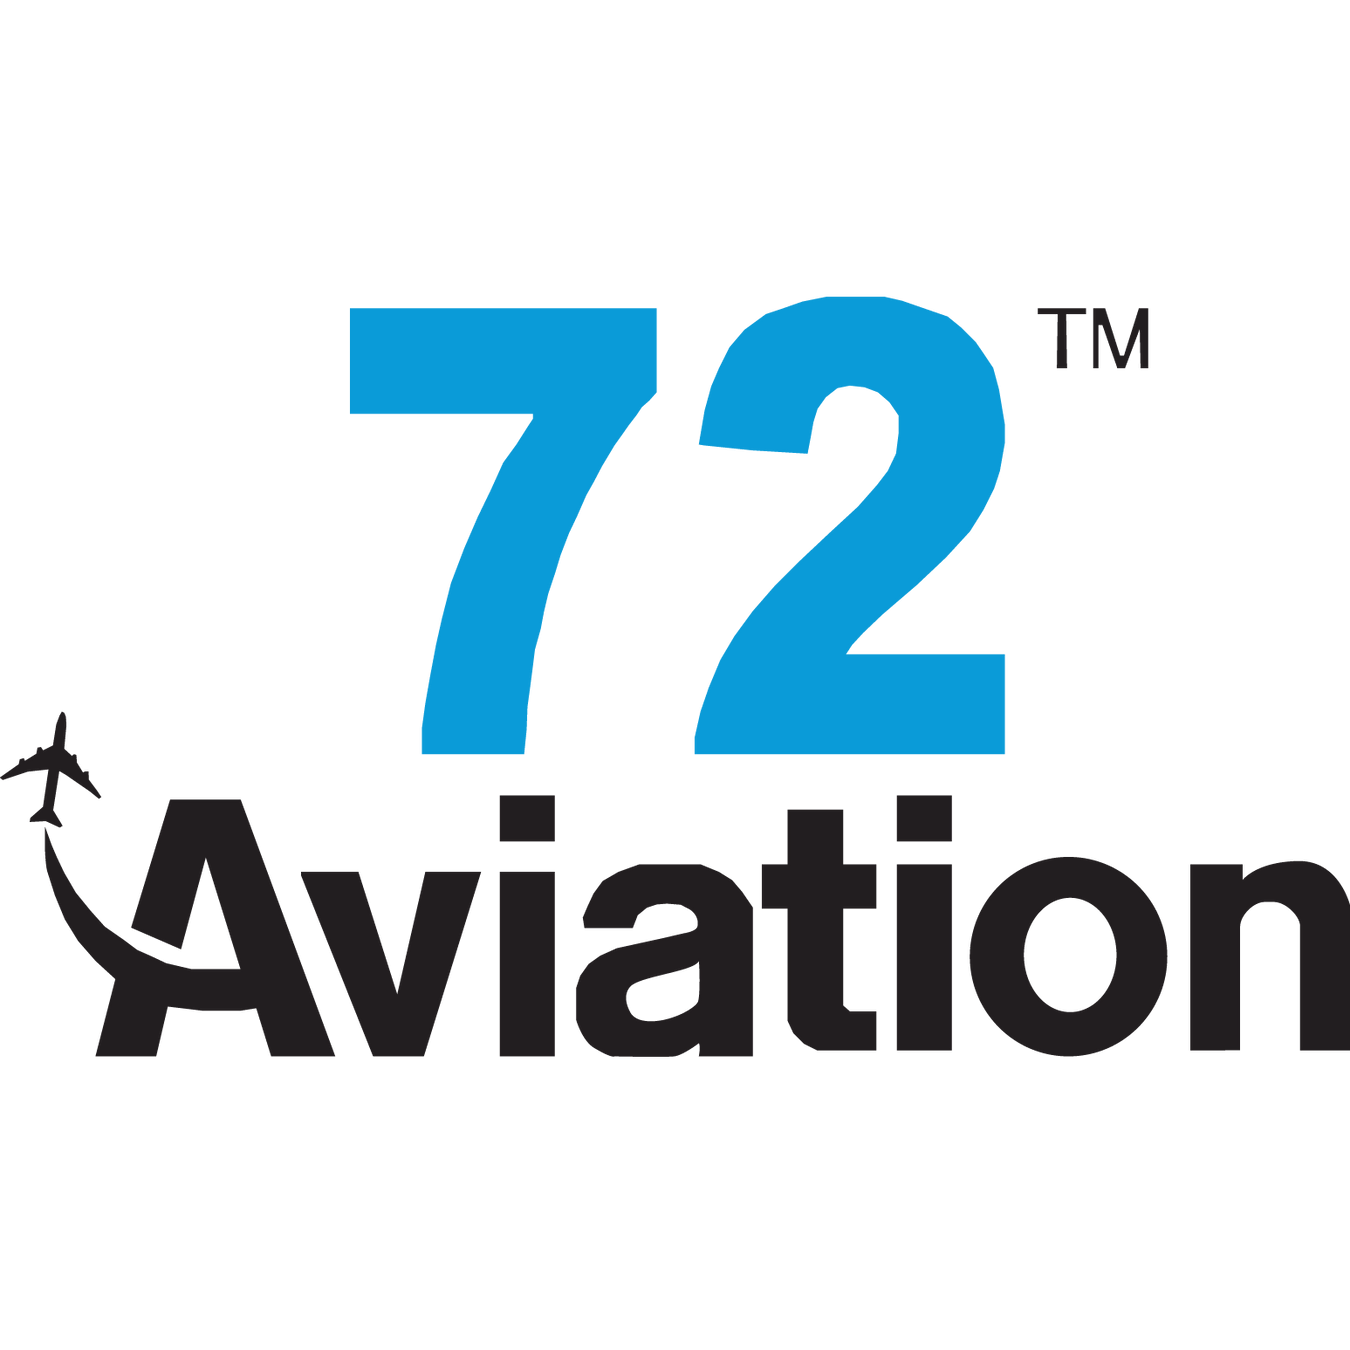 72 Aviation Models